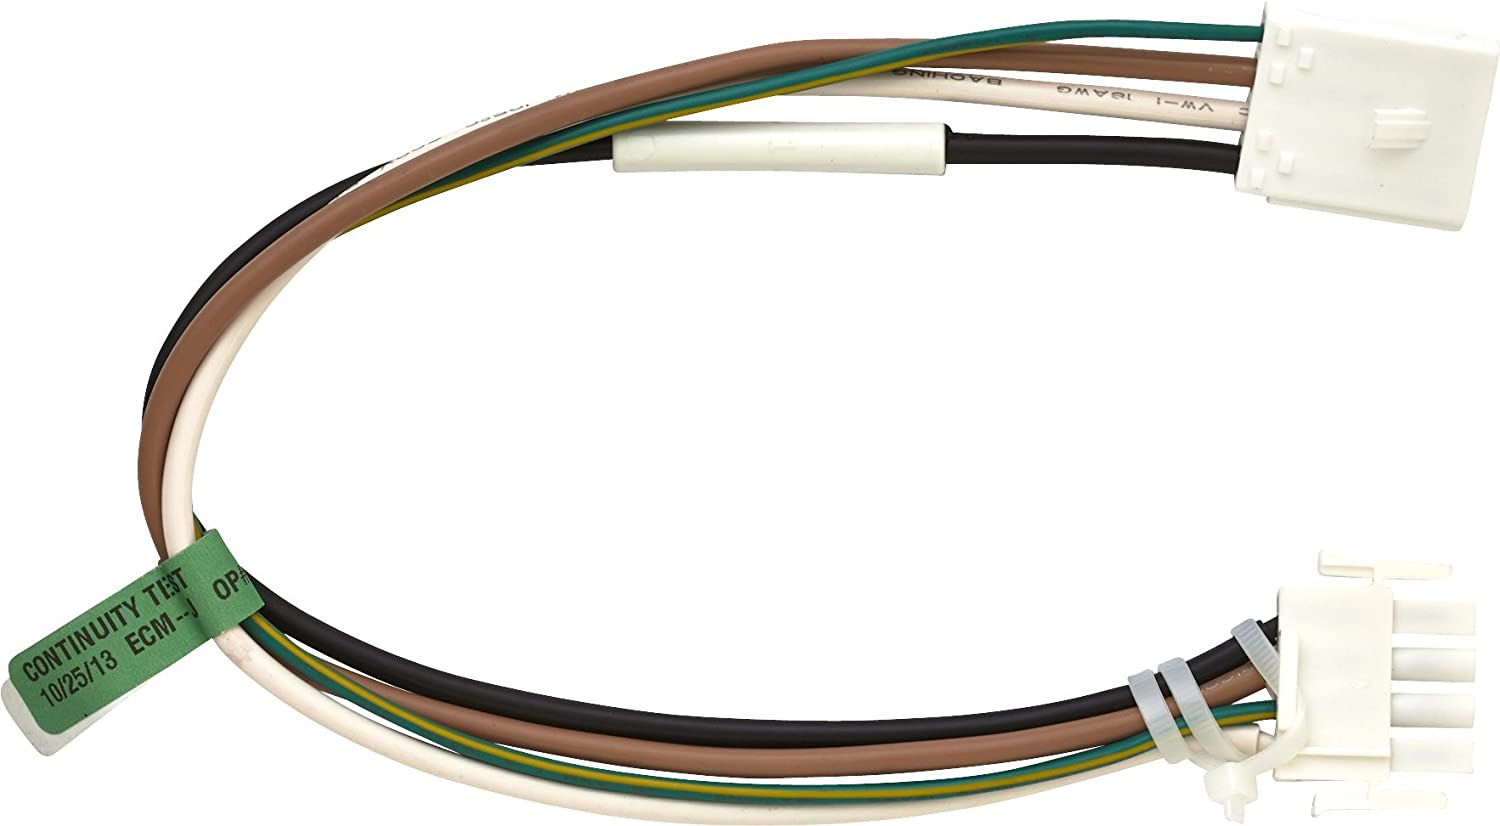 6113euQ4aCL._SL1500_ amazon com whirlpool d7813010 harness icemaker home improvement Wire Harness Assembly at mifinder.co